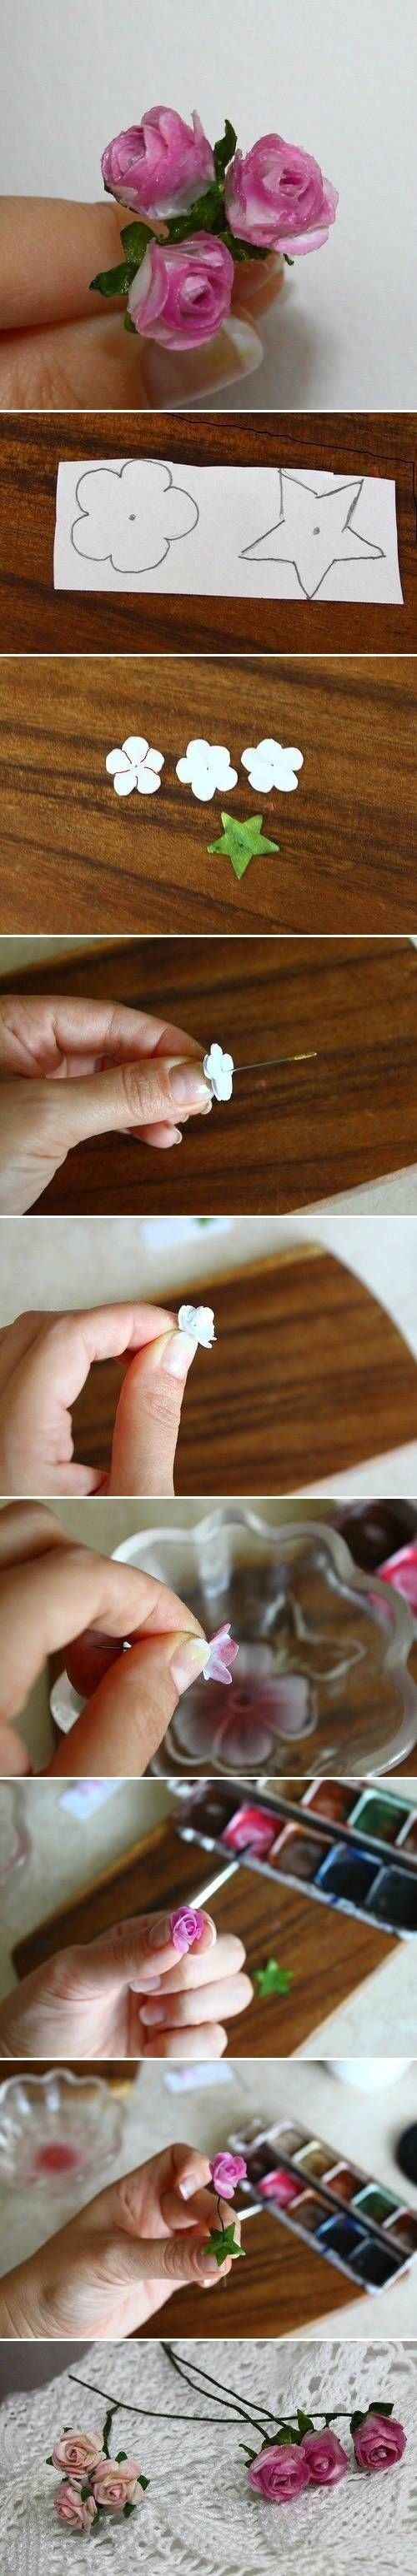 DIY Delicate Flower ~ doesn't say but I think it's paper but don't see why it wouldn't work for thin cloth. I'd spray a clear protective fixative on it afterwards too.